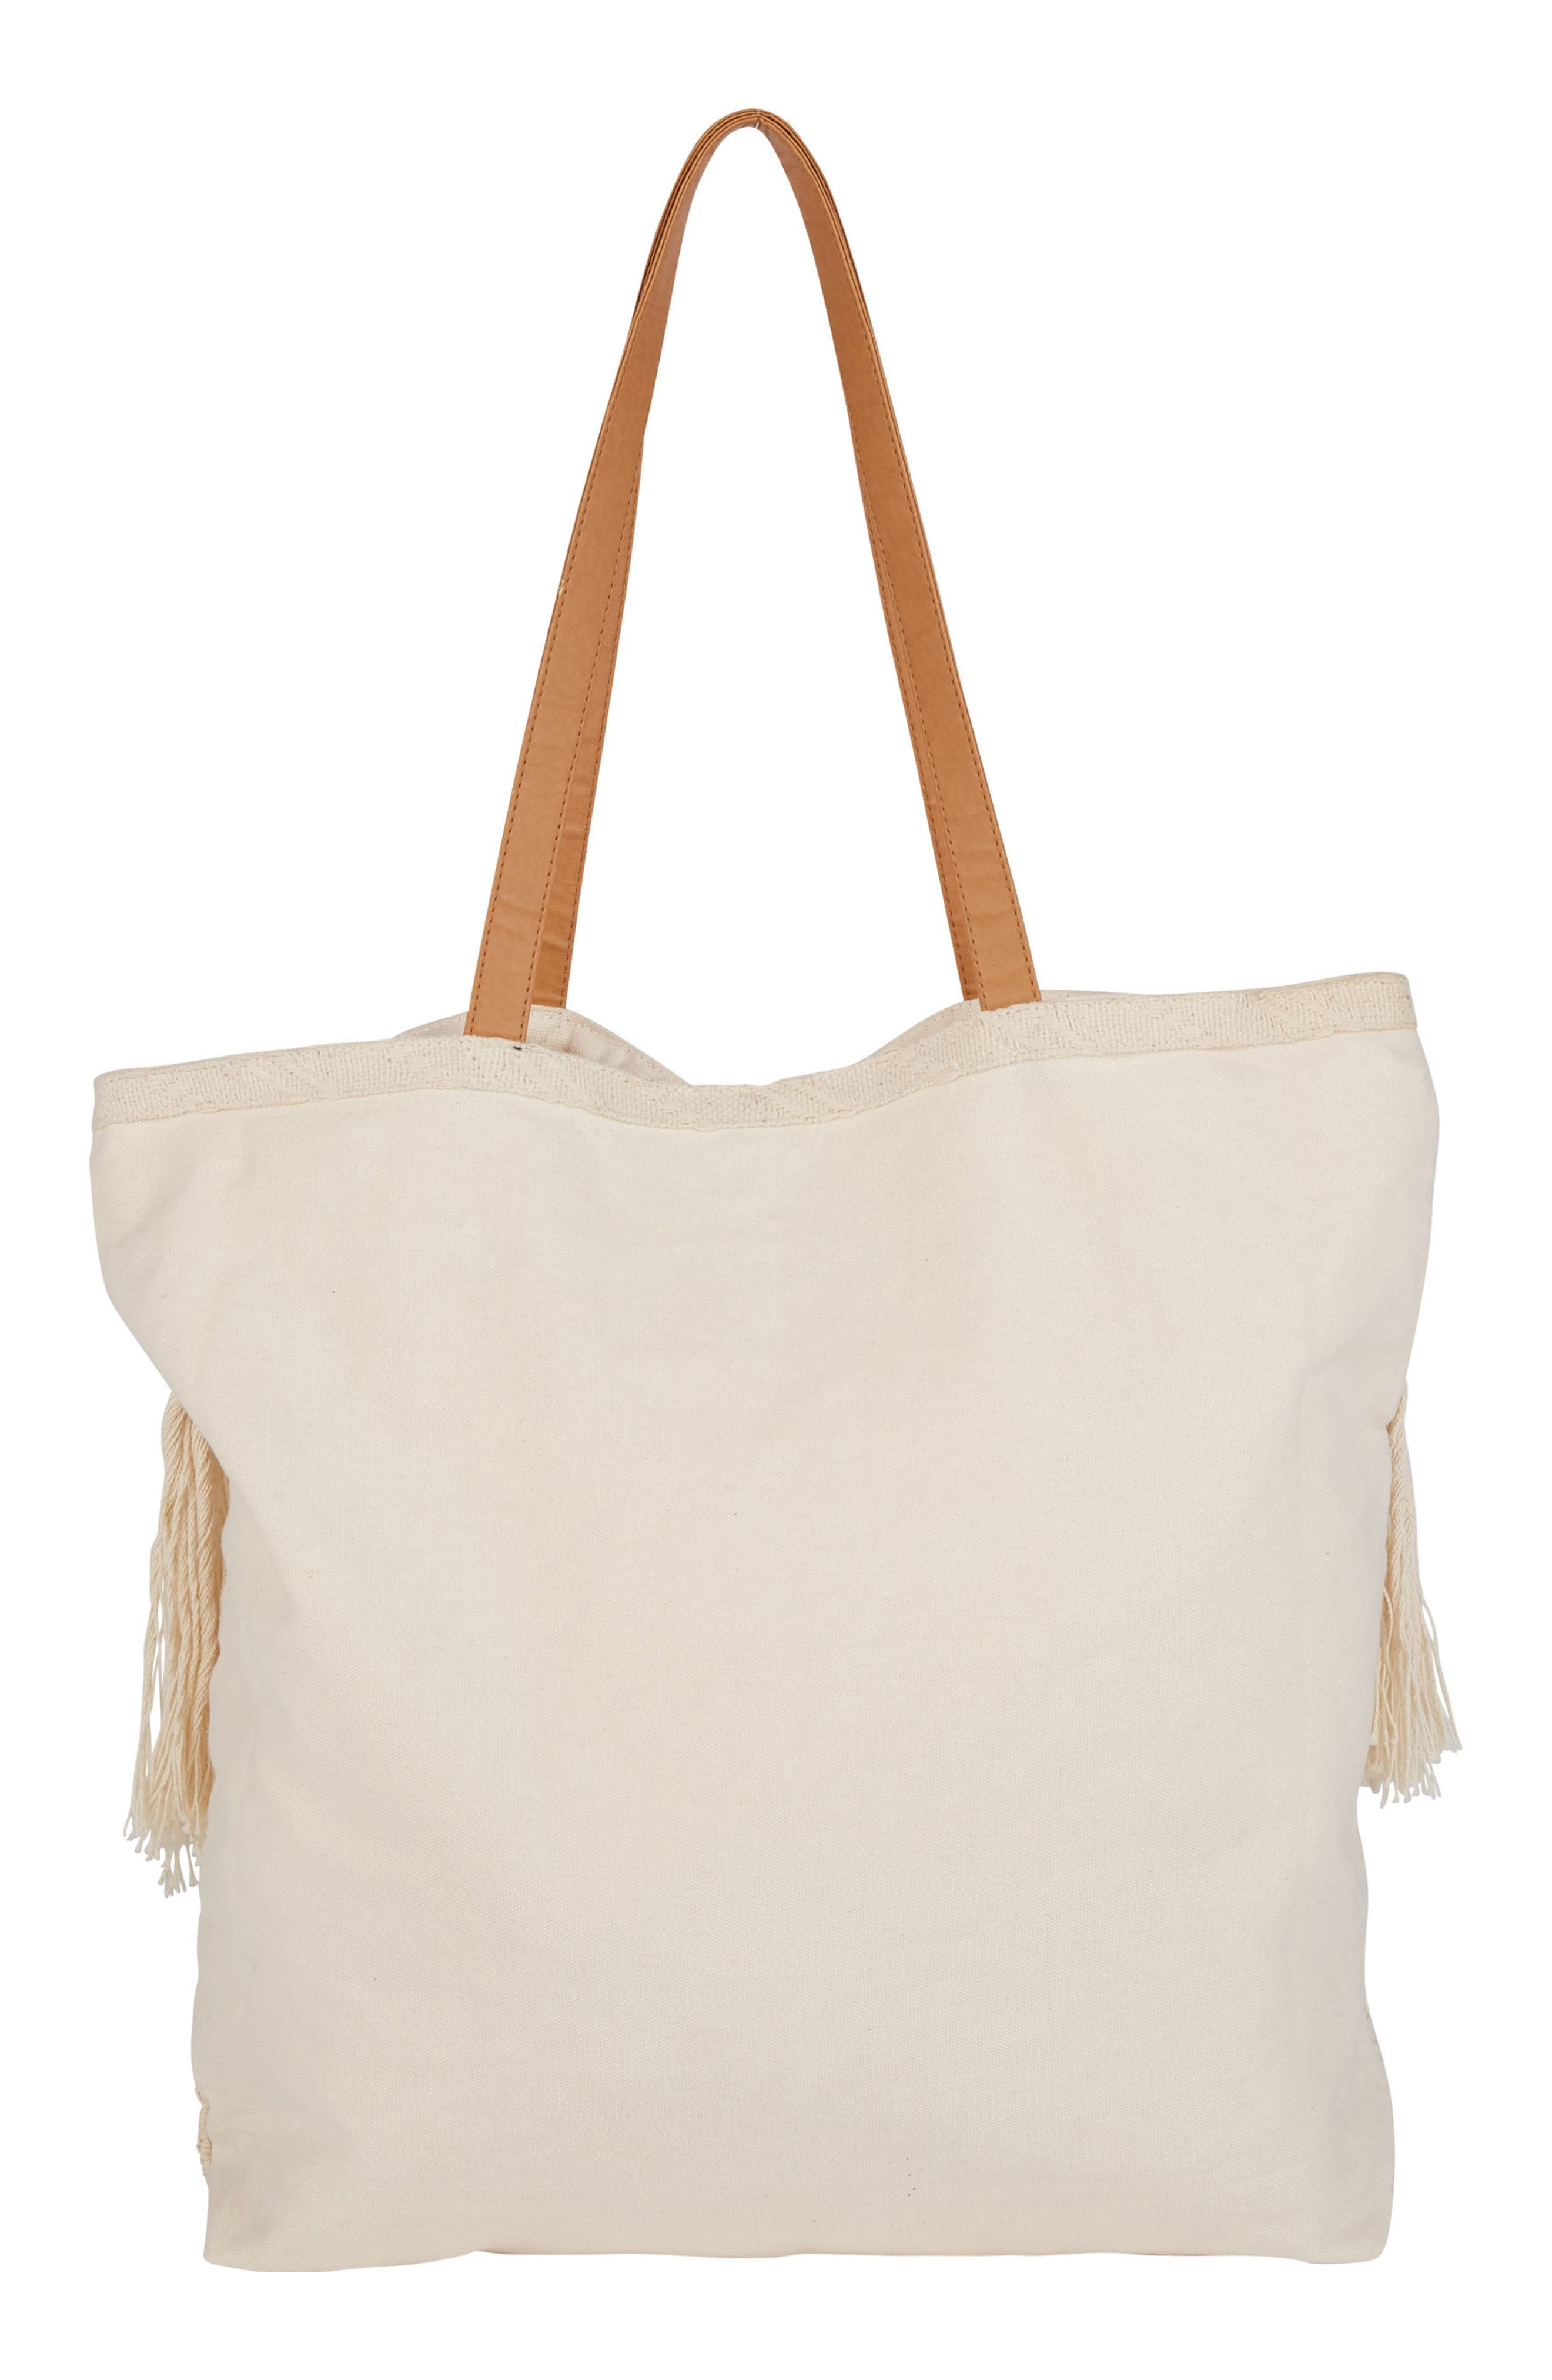 To the Limit Tote Bag,                             Alternate thumbnail 2, color,                             White Cap